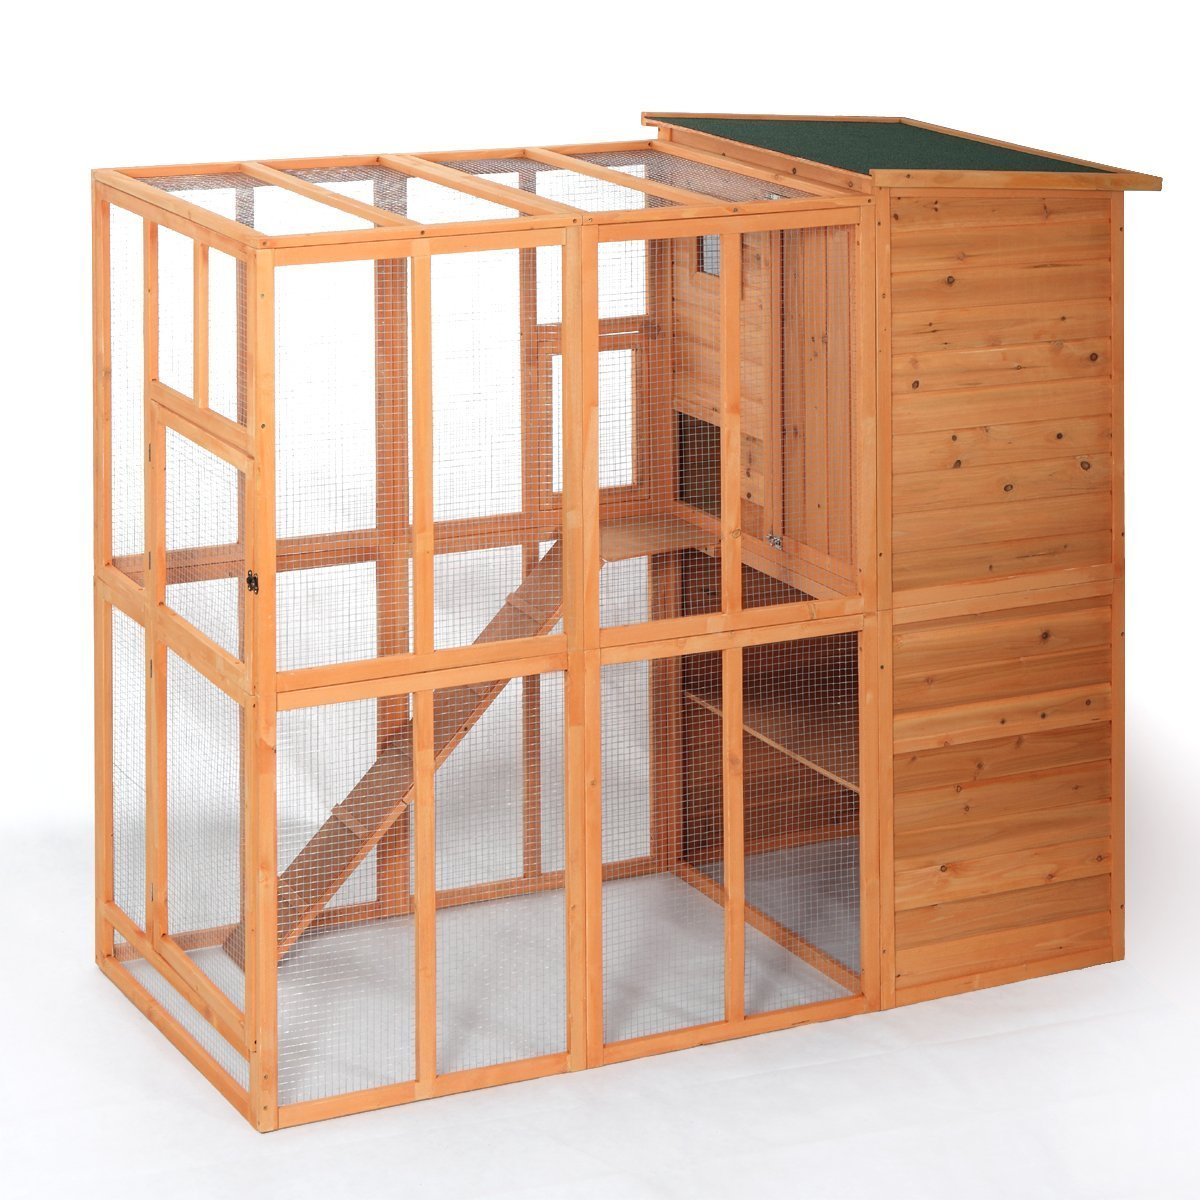 LAZYMOON Cat House Outdoor Run Wooden Cat Rabbit Home w/ Outside Fun Run Small Animal Enclosure Cage